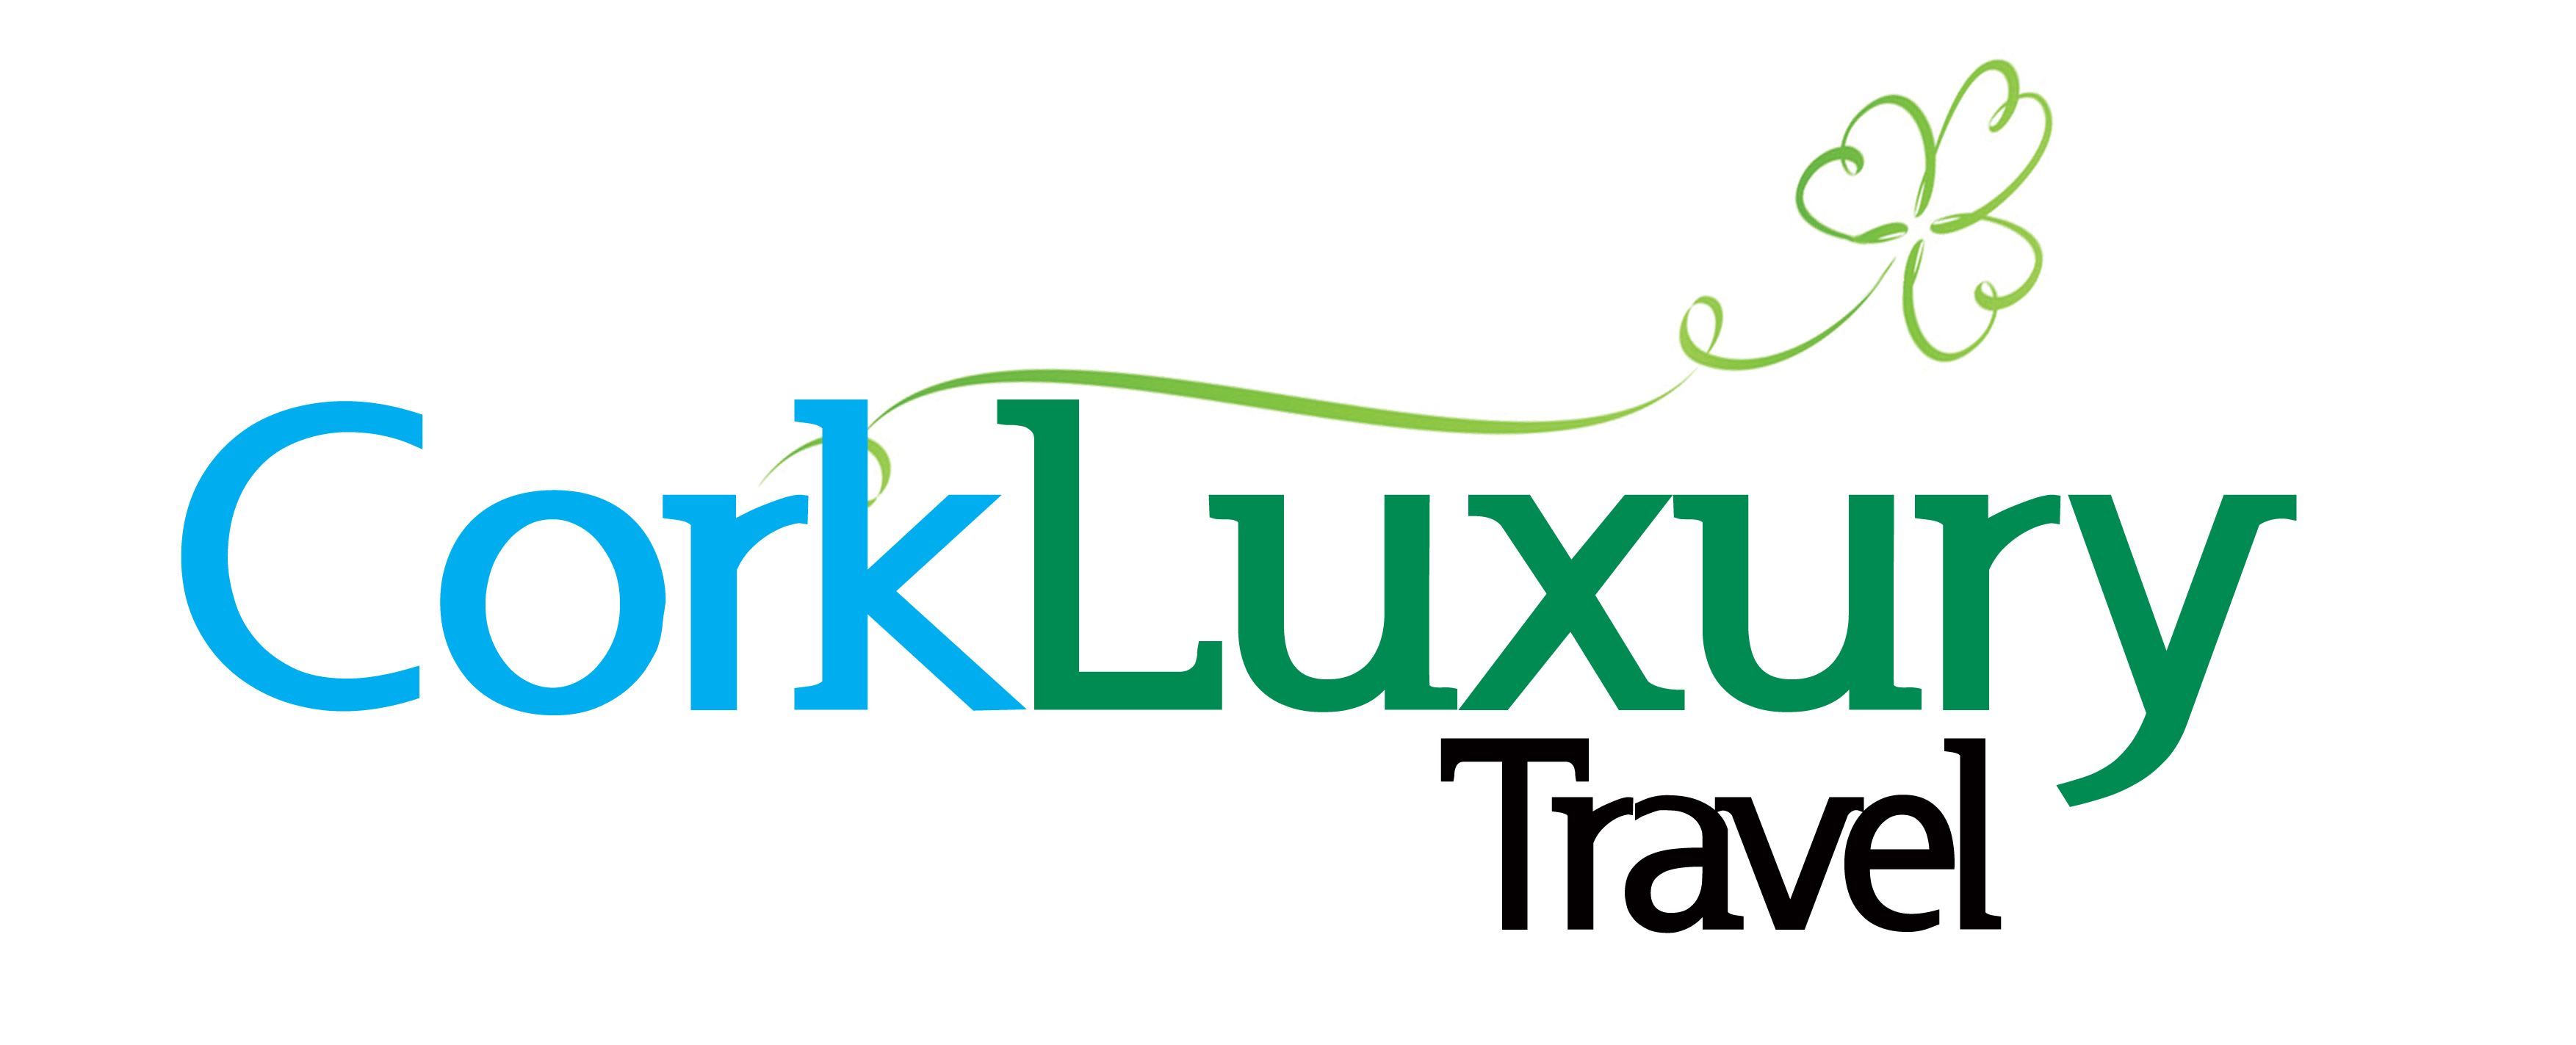 Cork Luxury Travel